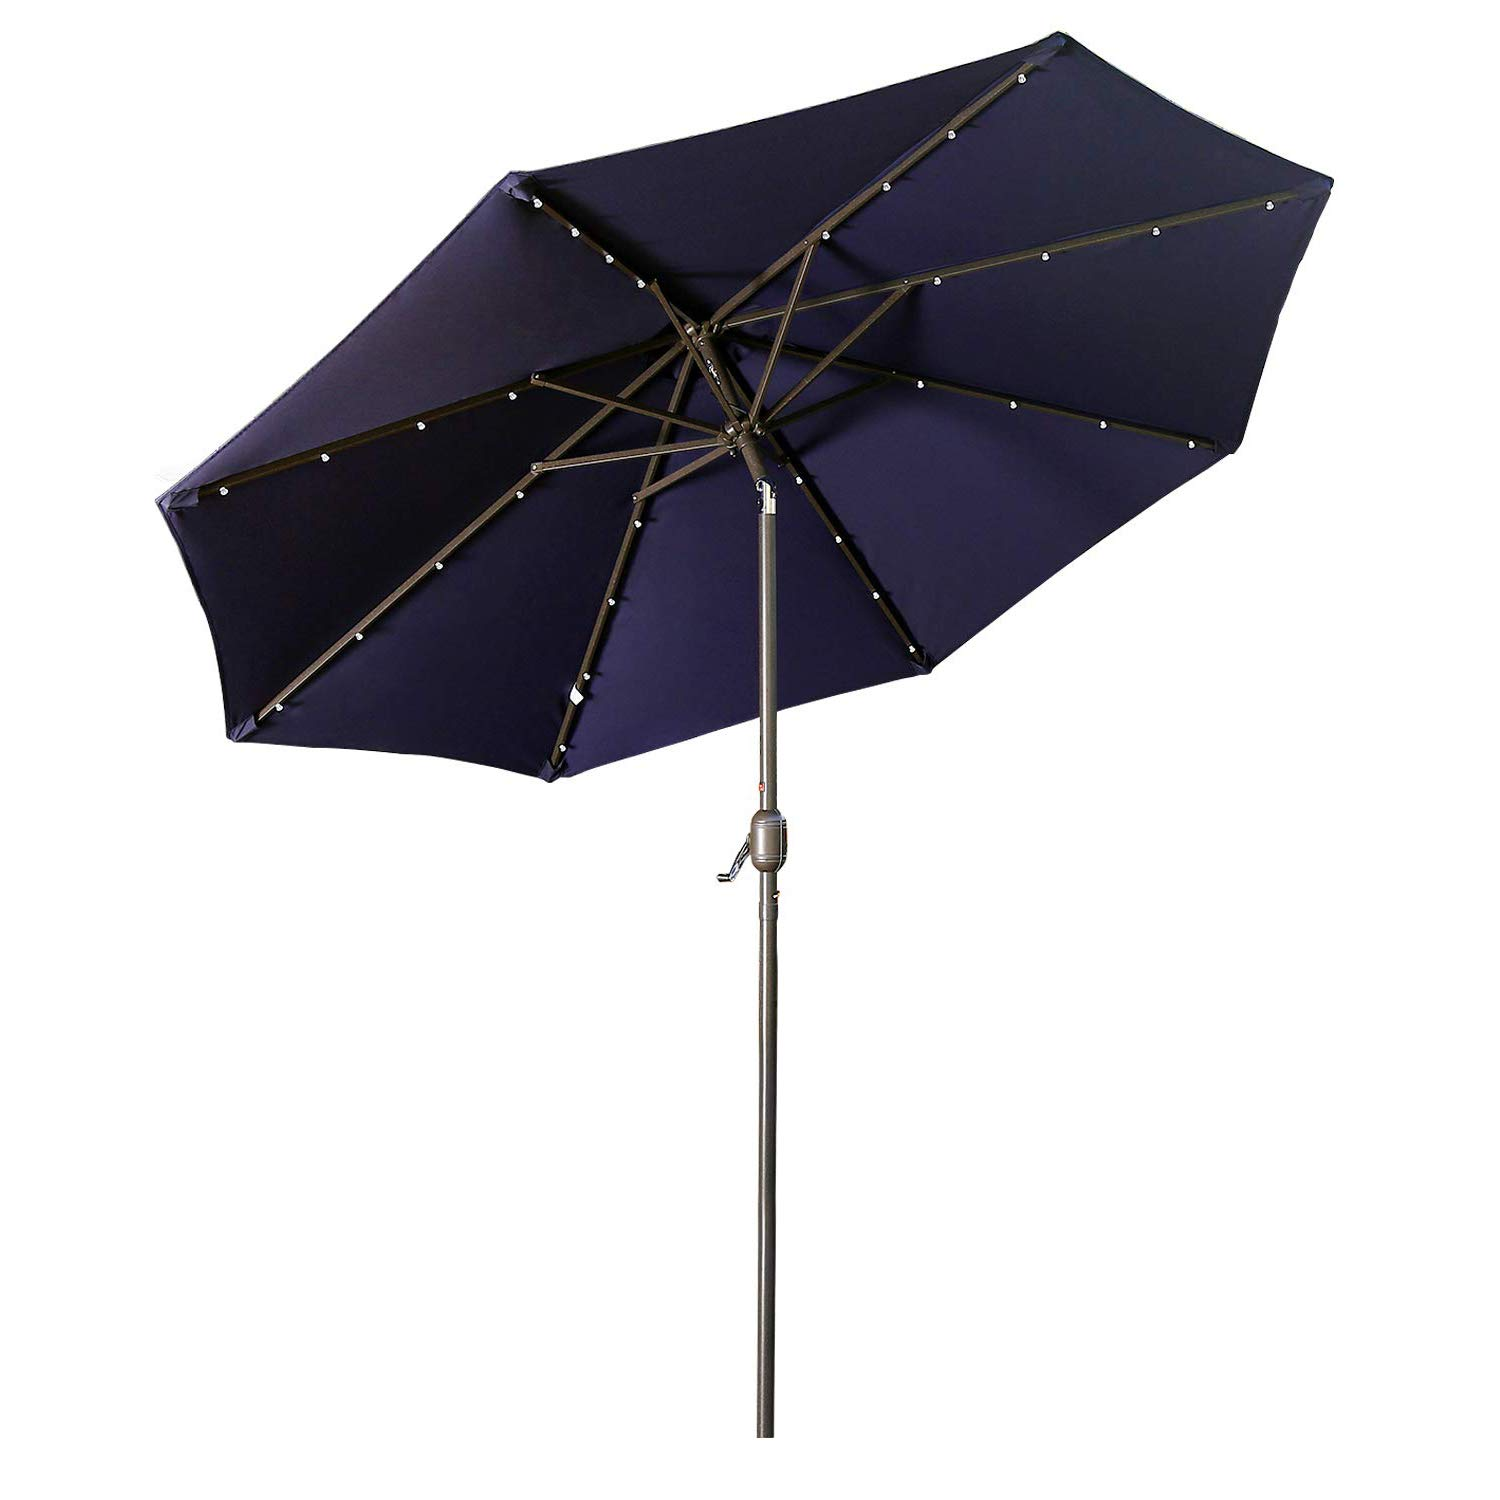 Aok Garden LED Outdoor Umbrella,9 ft Patio Umbrella LED Solar Power with Push Button Tilt and Crank Lift Ventilation,8 Sturdy Ribs Non-Fading Sunshade,Navy Blue